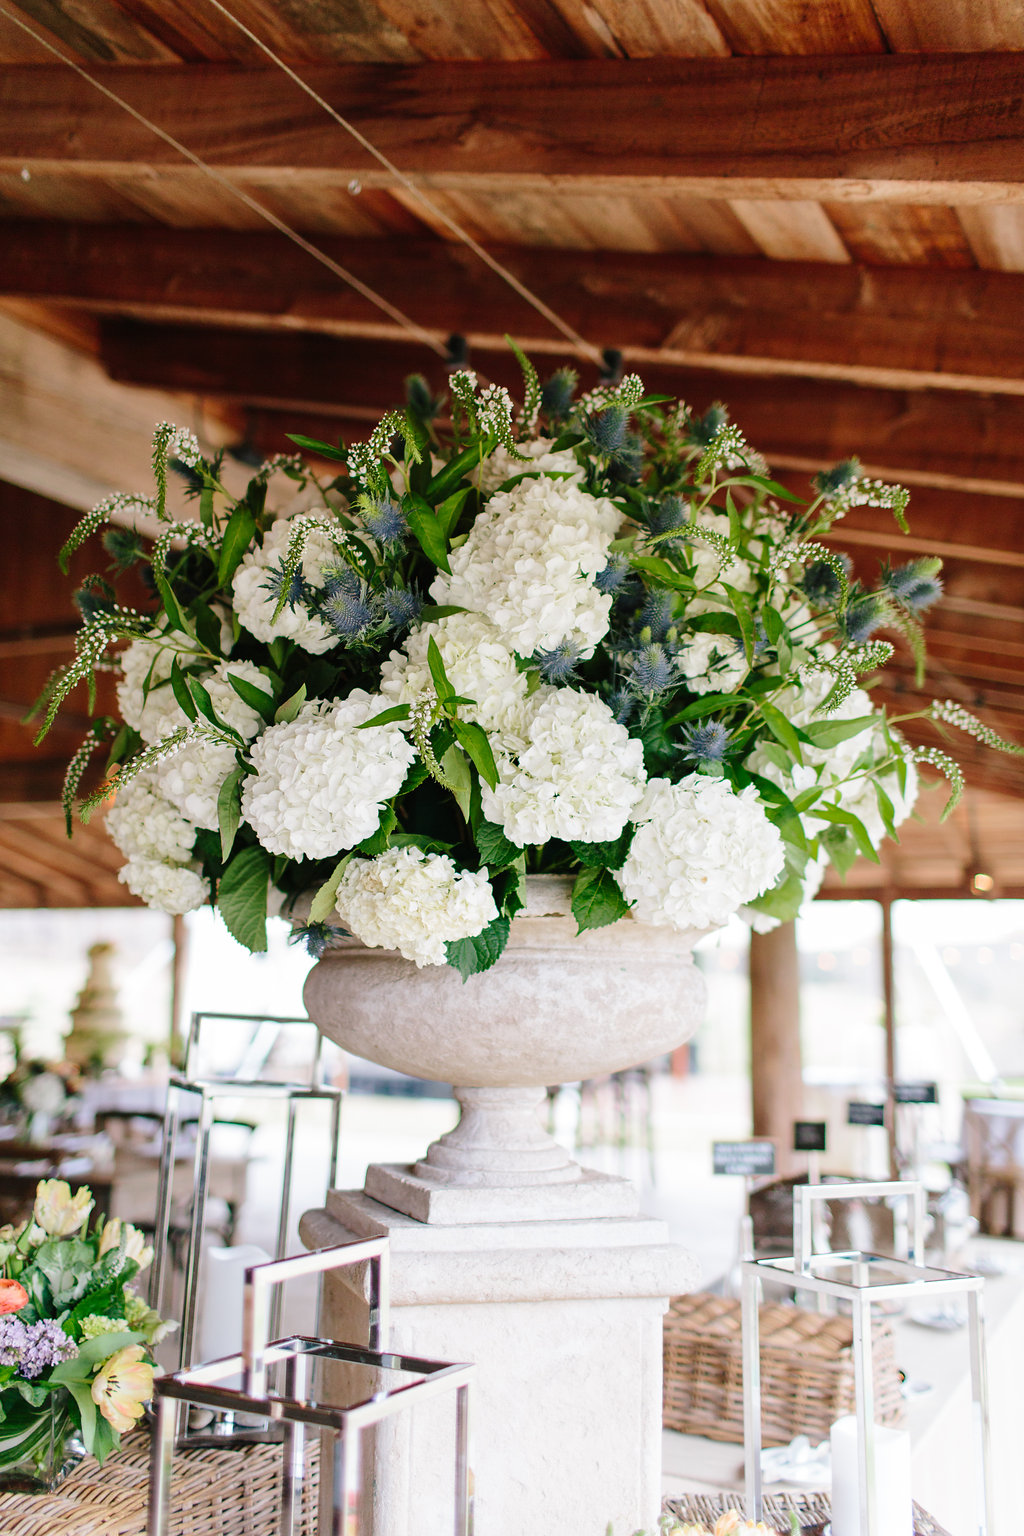 floral-arrangement-greg-boulus-events-augusta-georgia